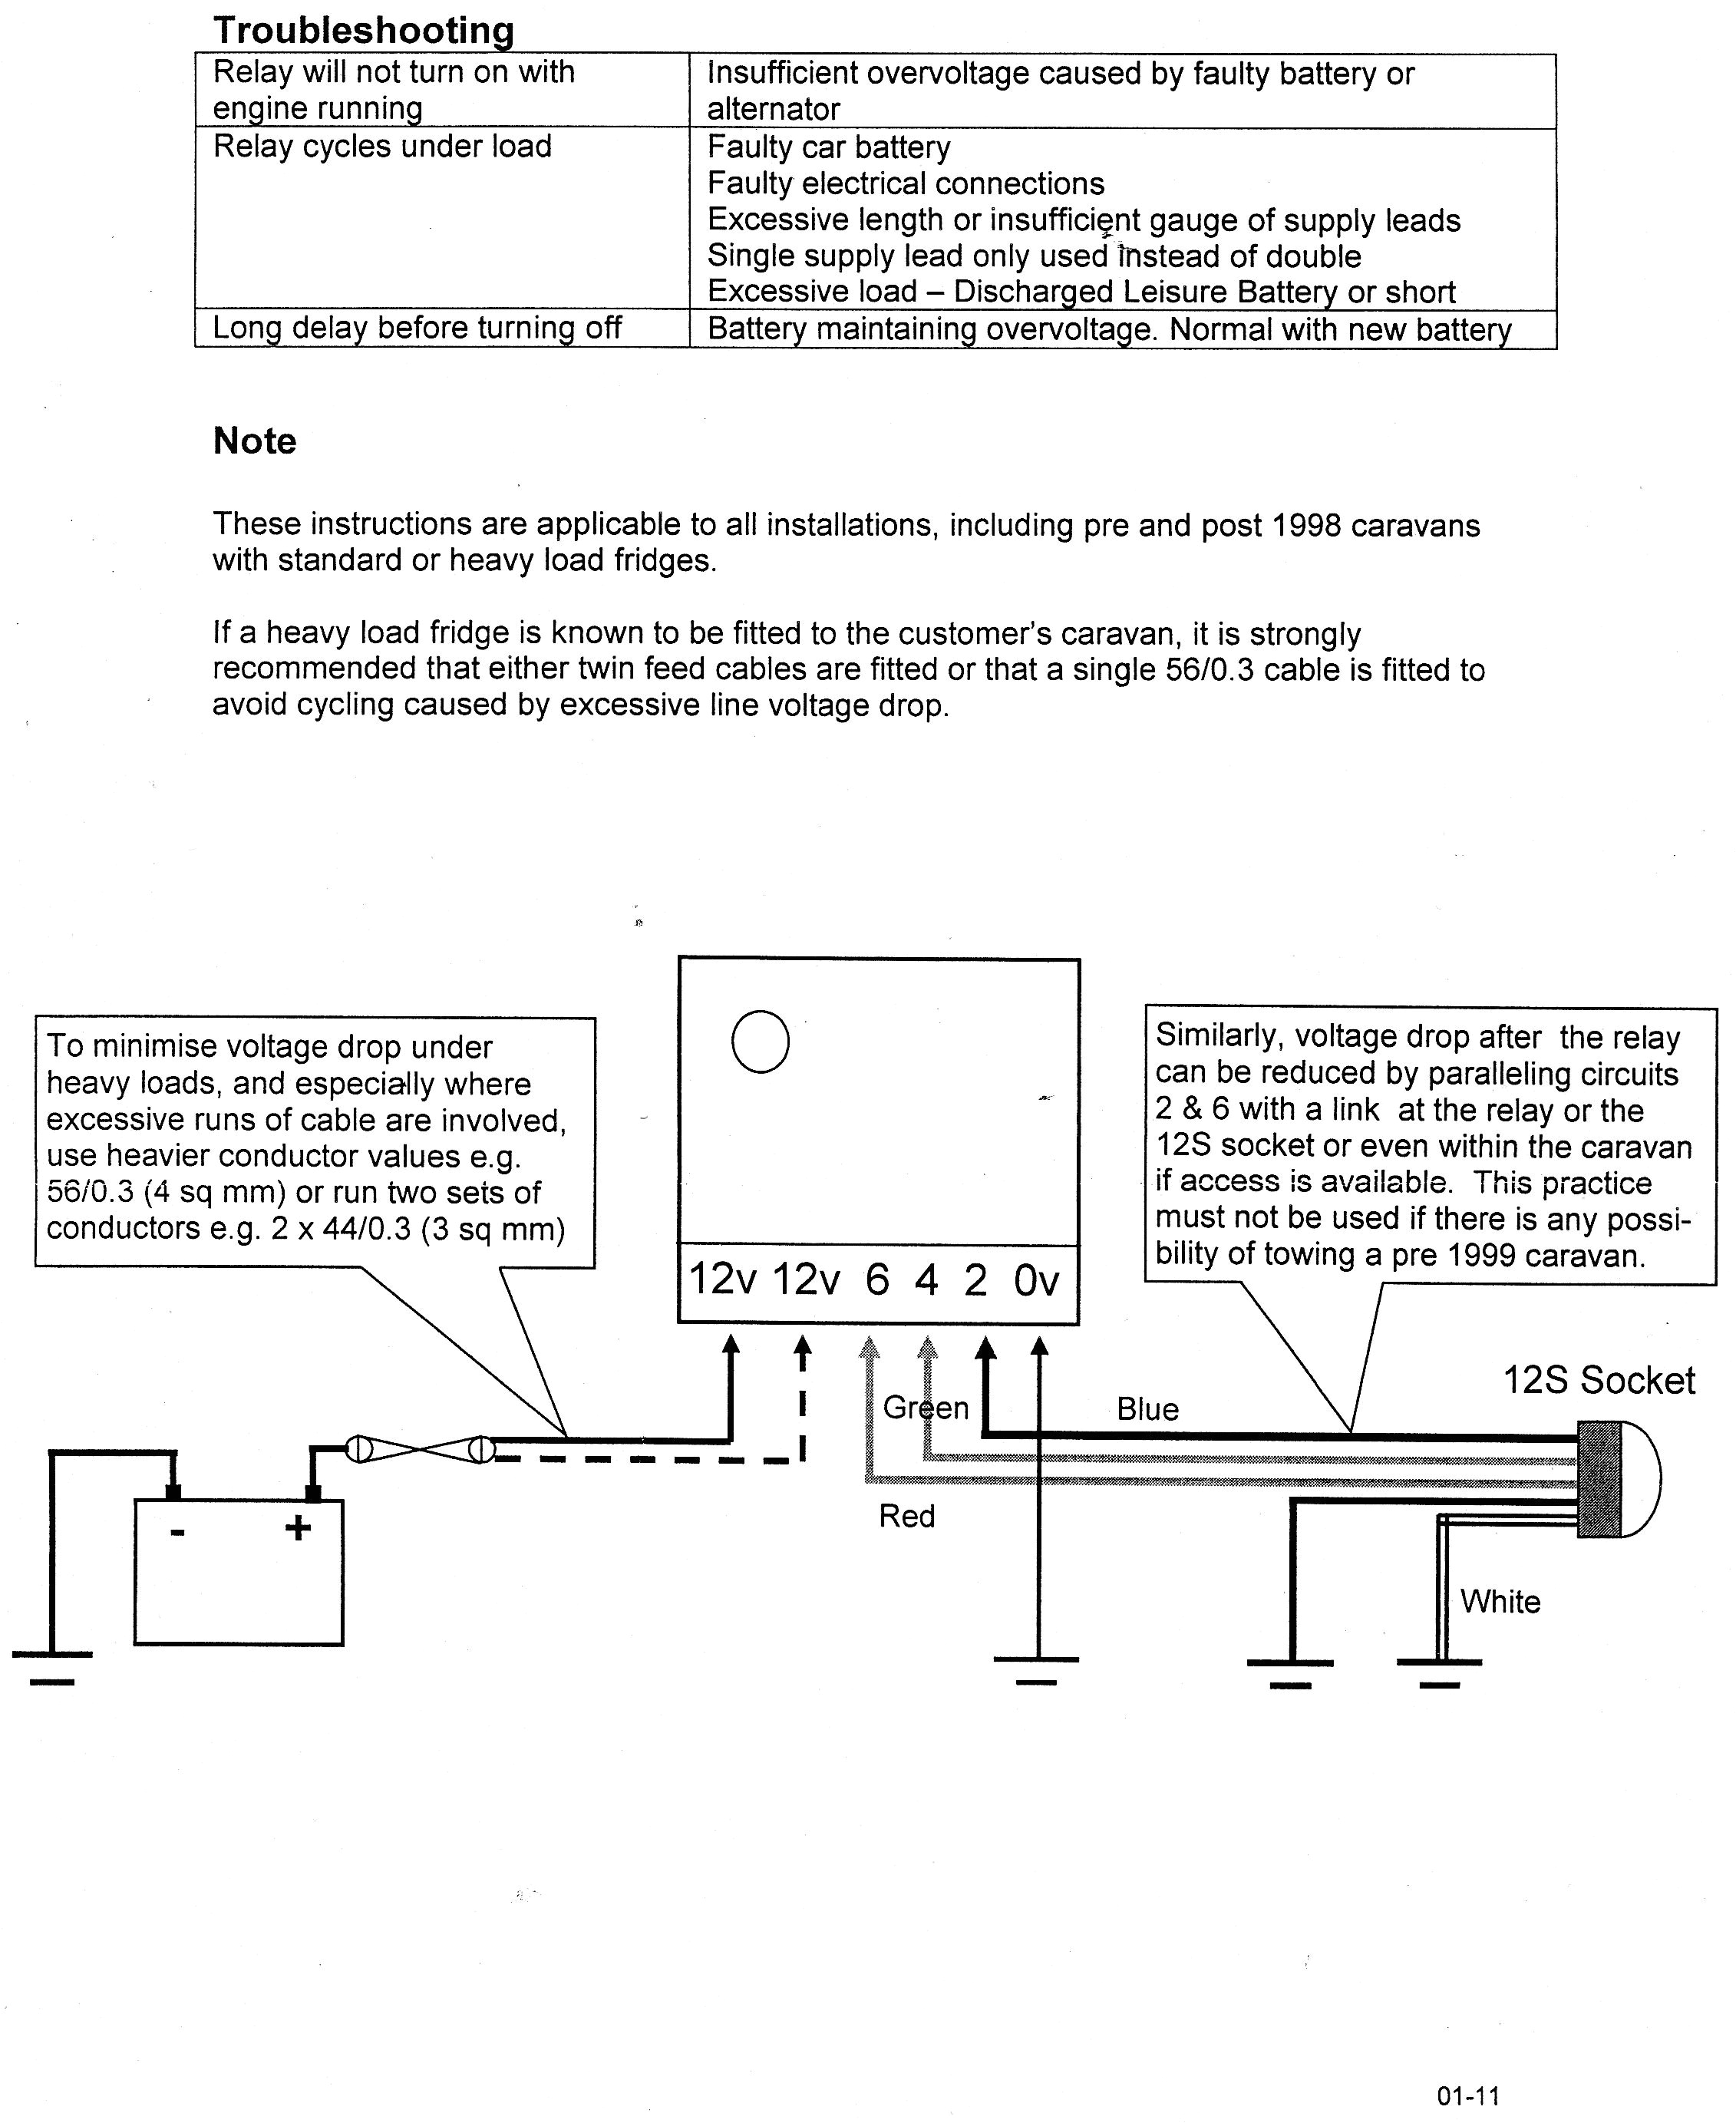 7 Way Universal bypass Relay Wiring Diagram Vauxhall Vivaro towbar Wiring Diagram Wiring Diagram today